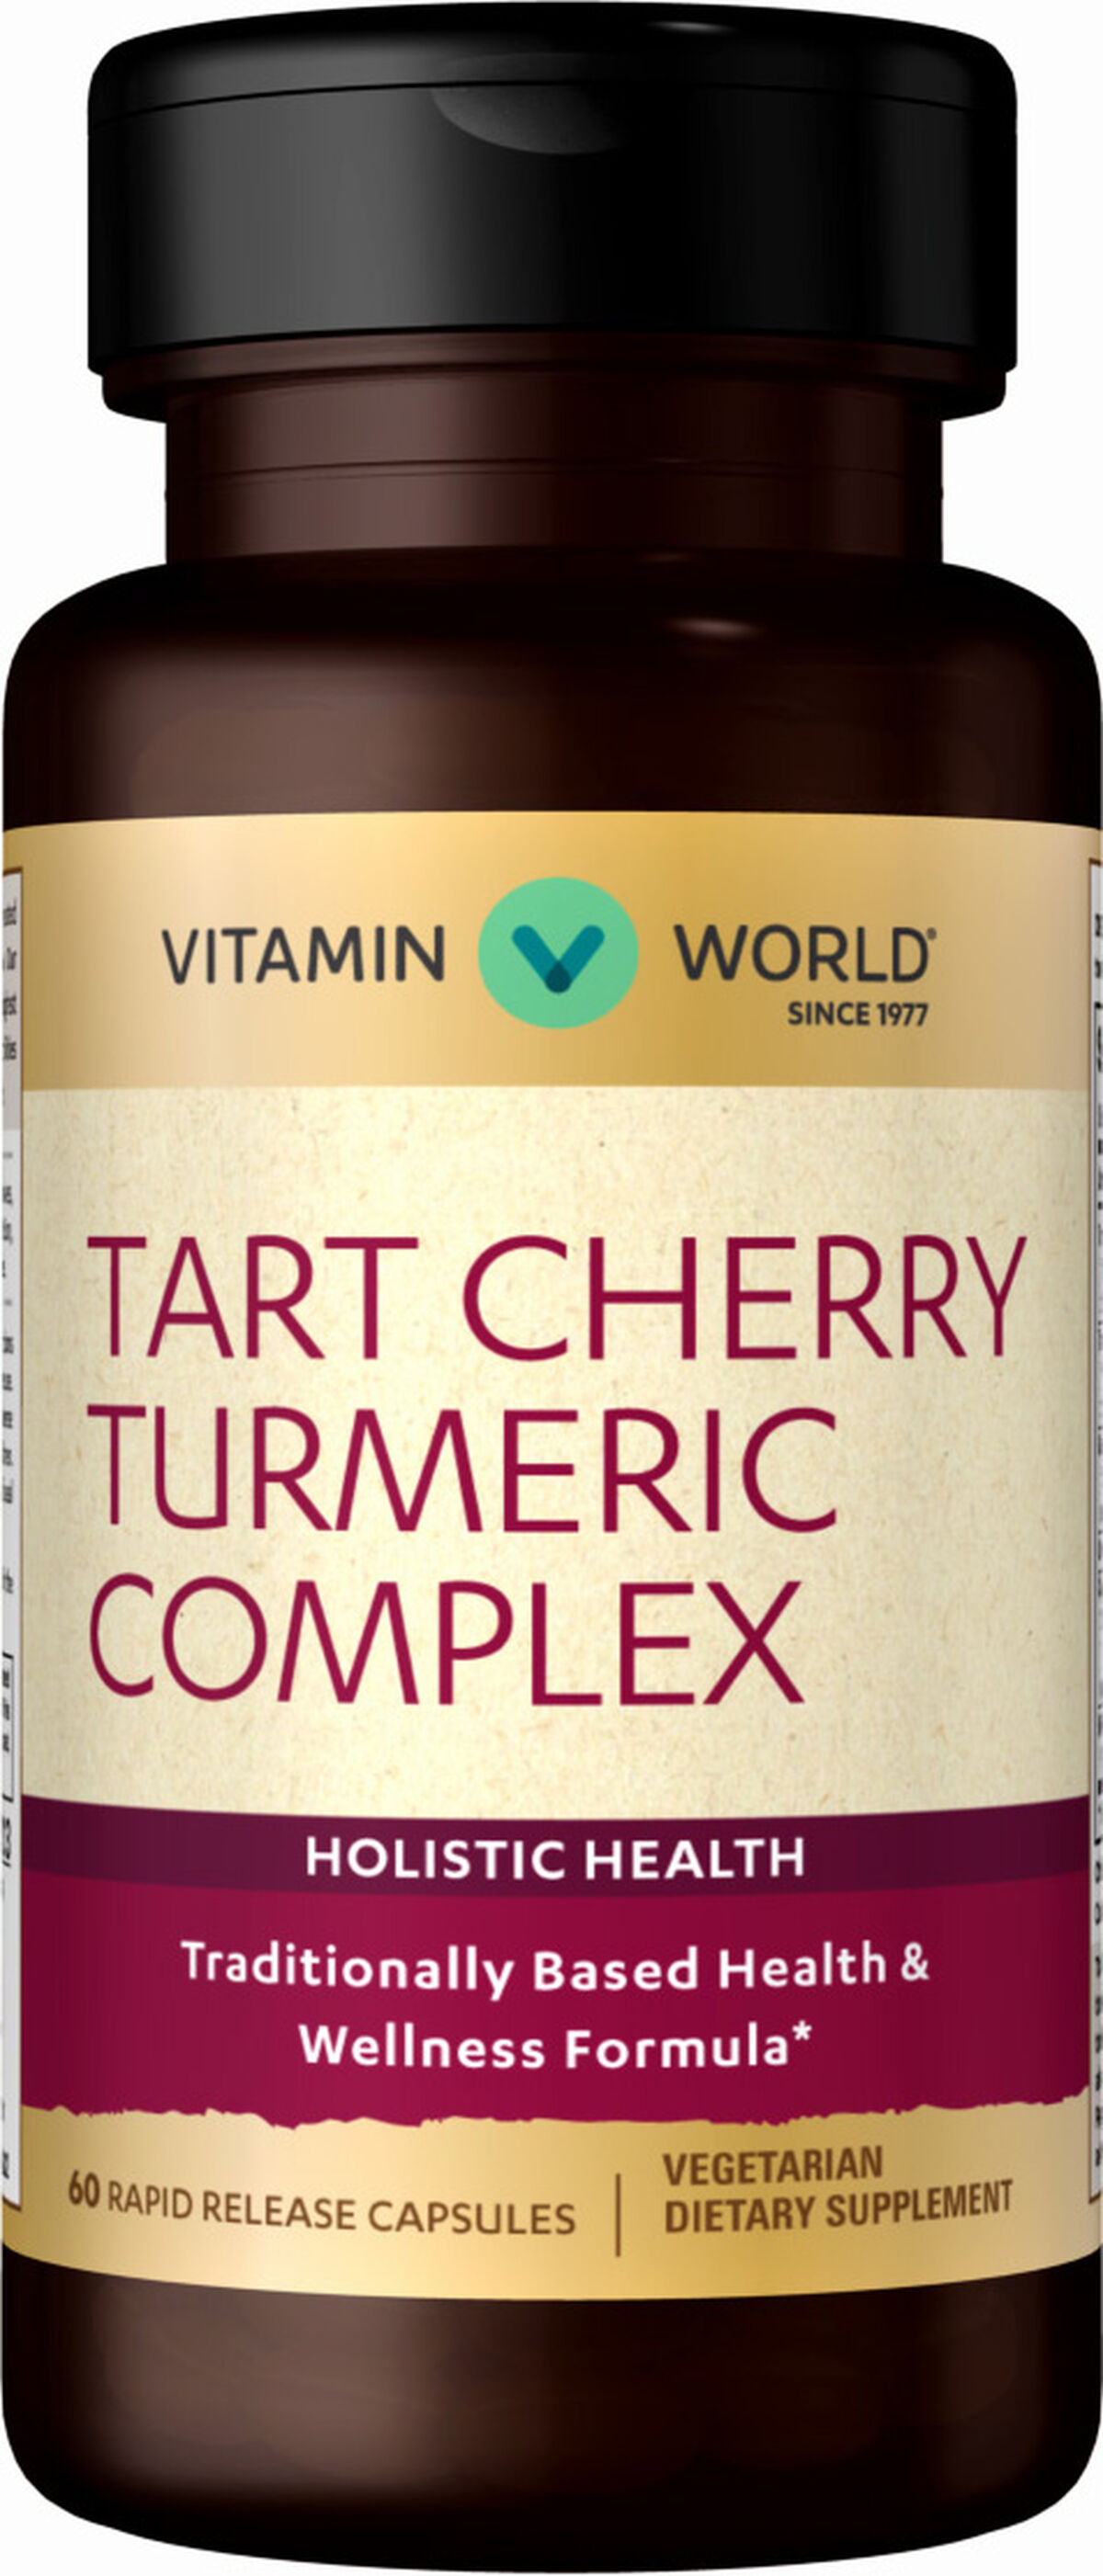 Tart Cherry Turmeric Complex | Vitamin World | Tuggl